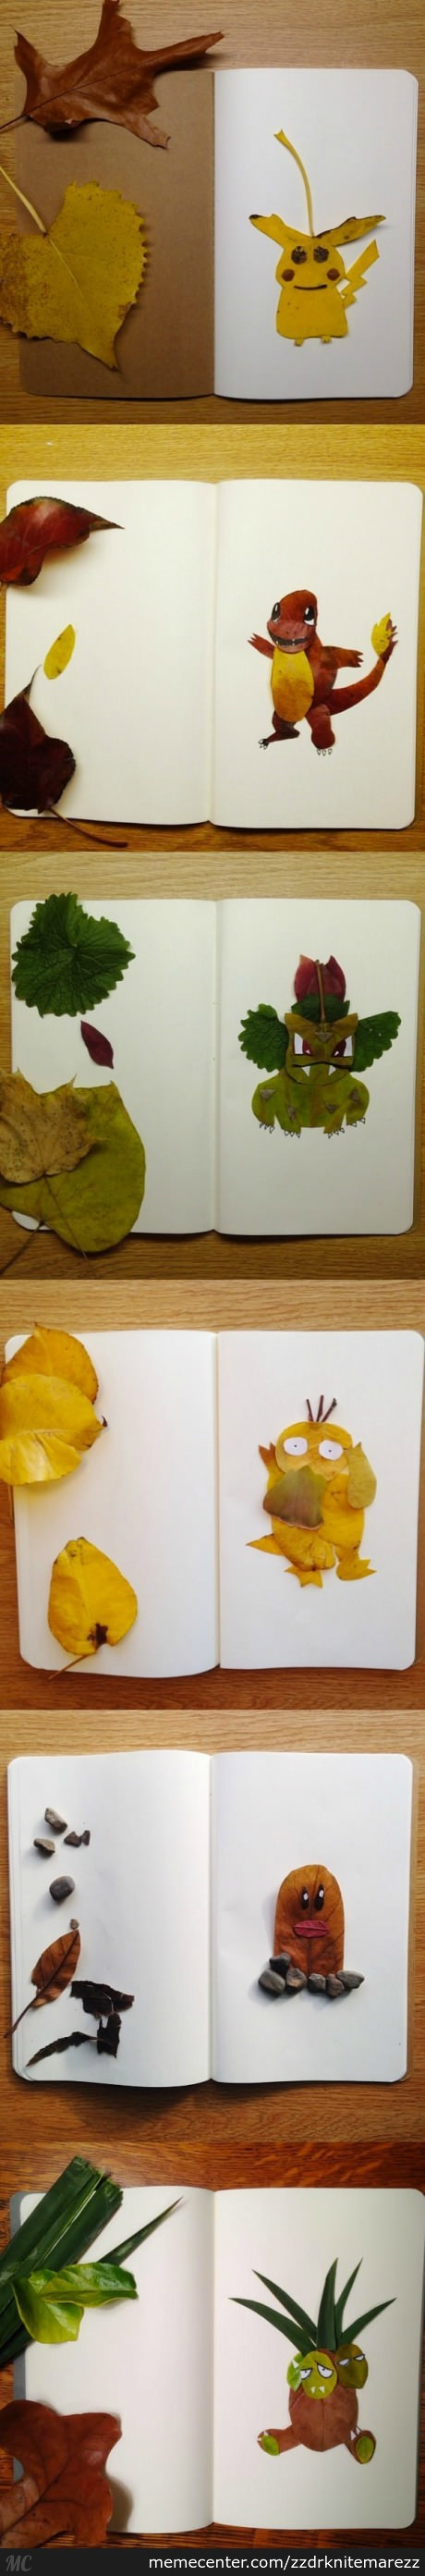 Pokemon Made Out Of Leaves And Stones.